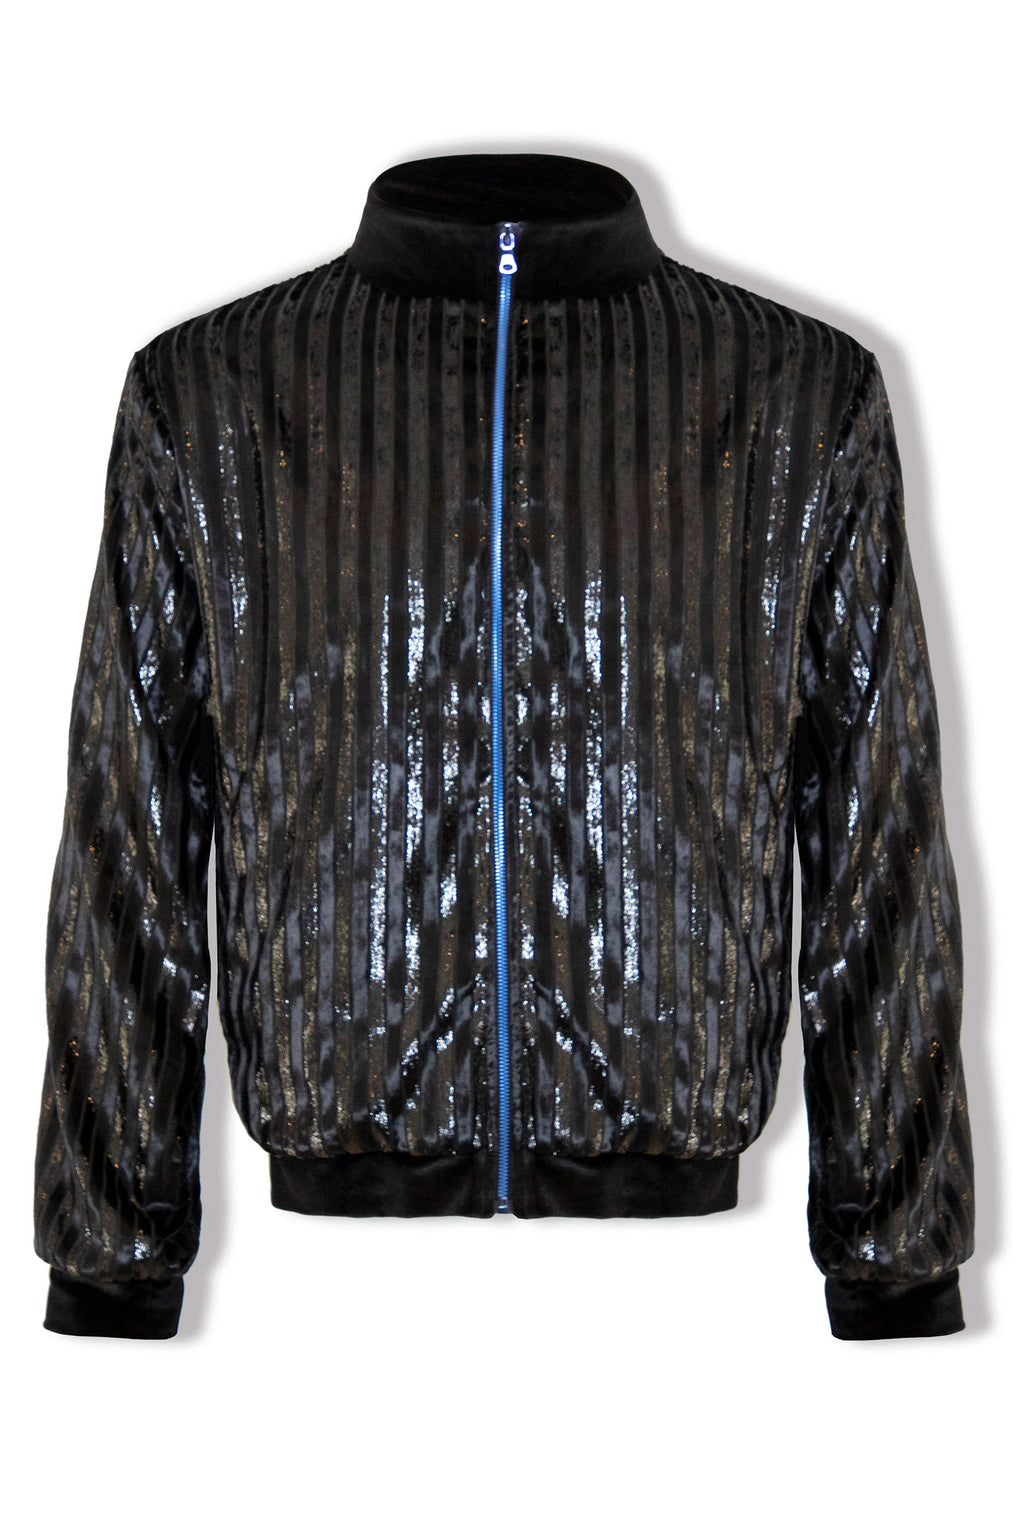 Unisex Black Stripe Jacket